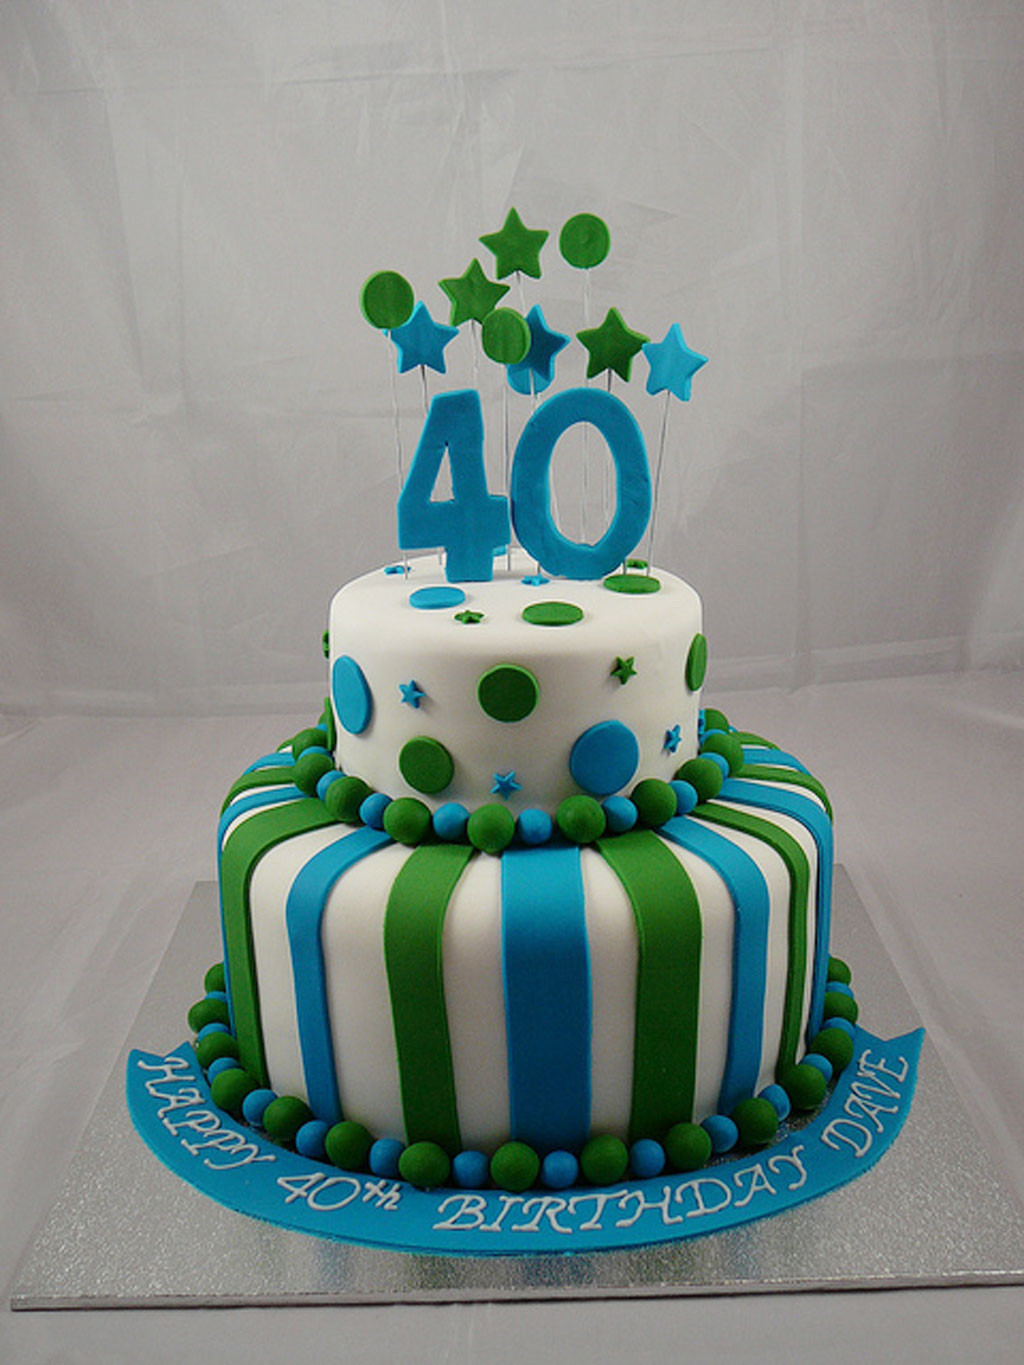 Best ideas about Birthday Cake Images For Man . Save or Pin Cake man on Pinterest Now.